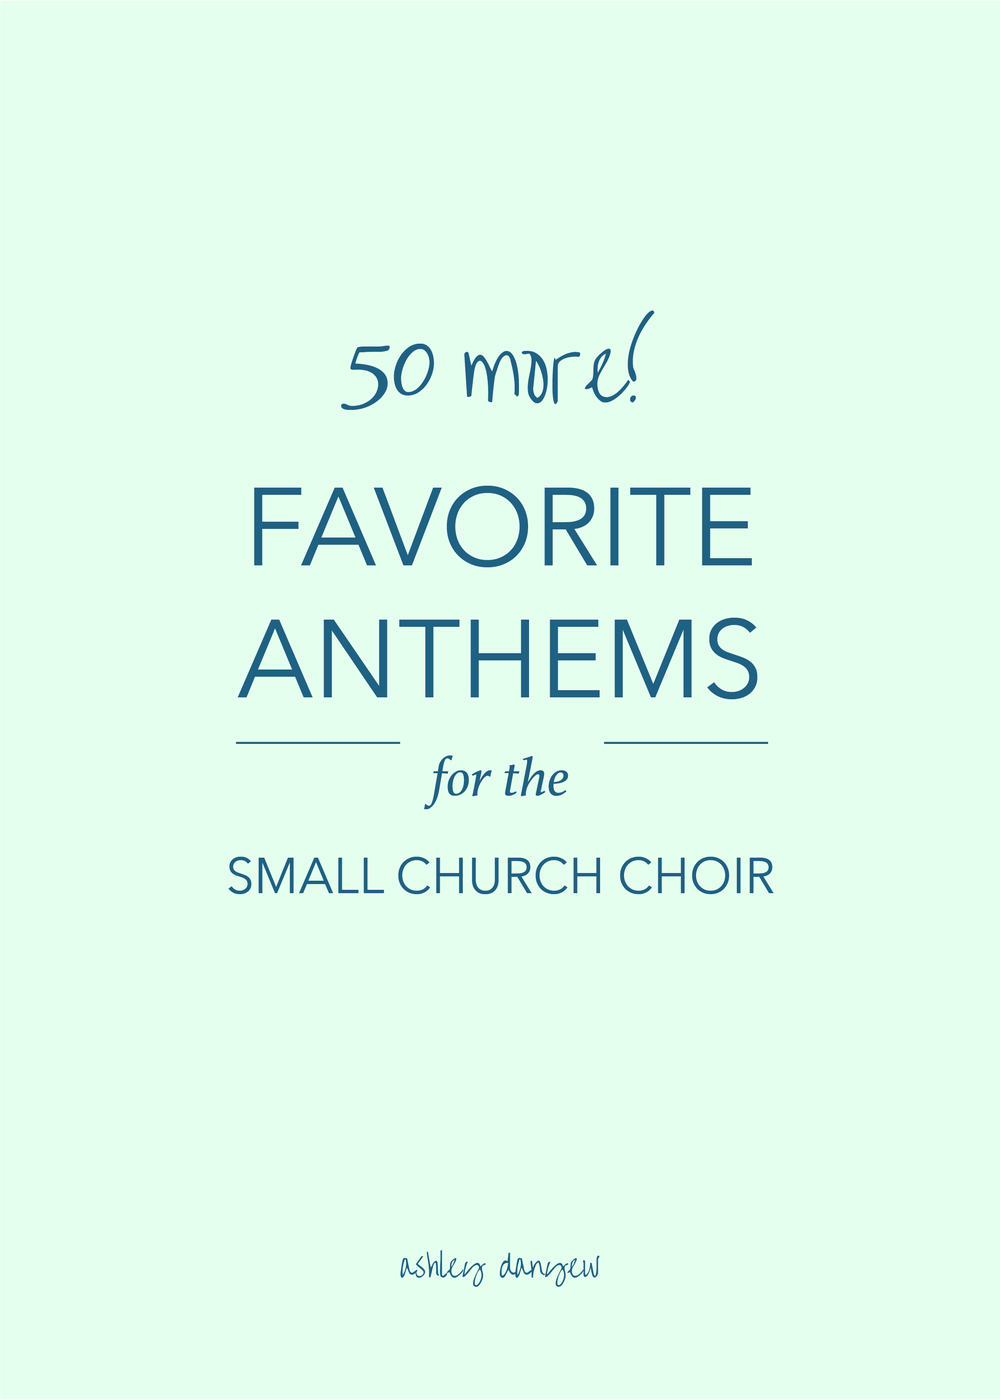 50 More Favorite Anthems for the Small Church Choir-01.png